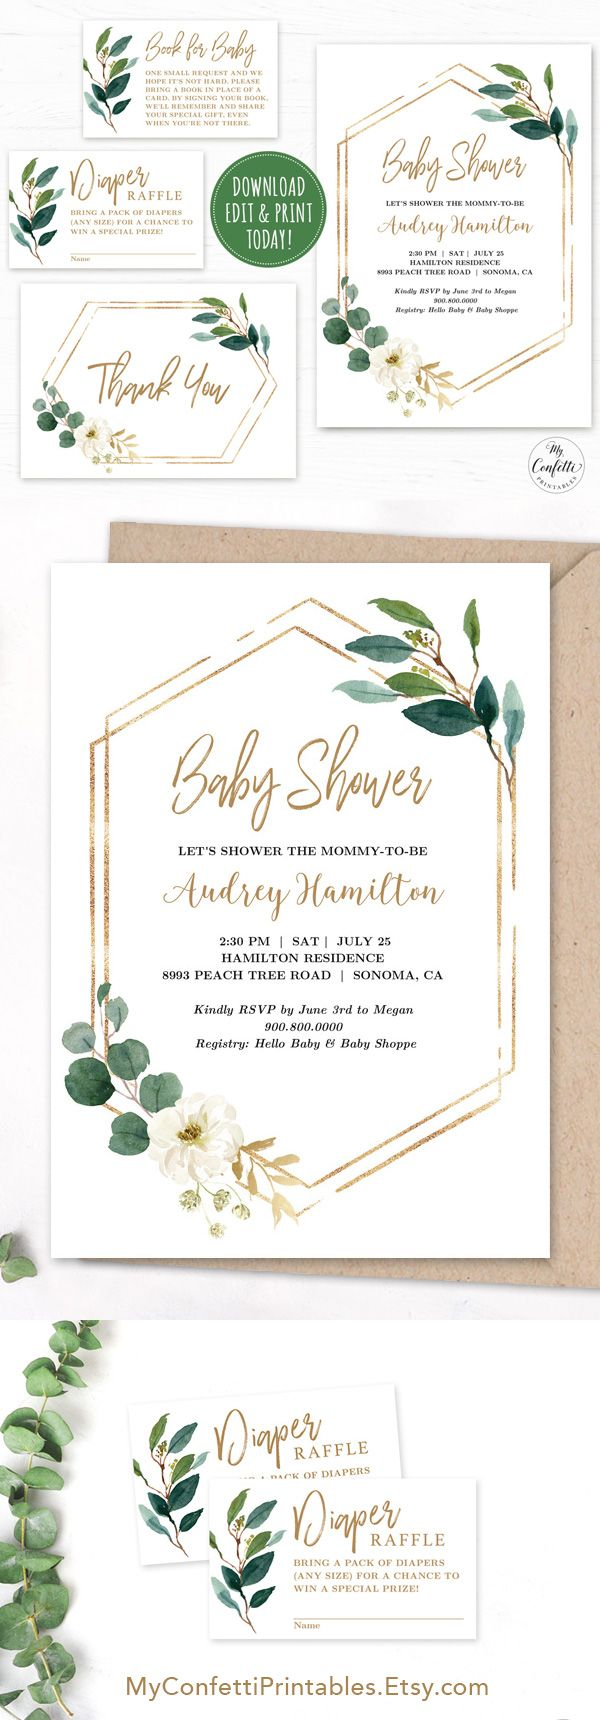 EDITABLE Greenery Baby Shower Invitation Template Printable